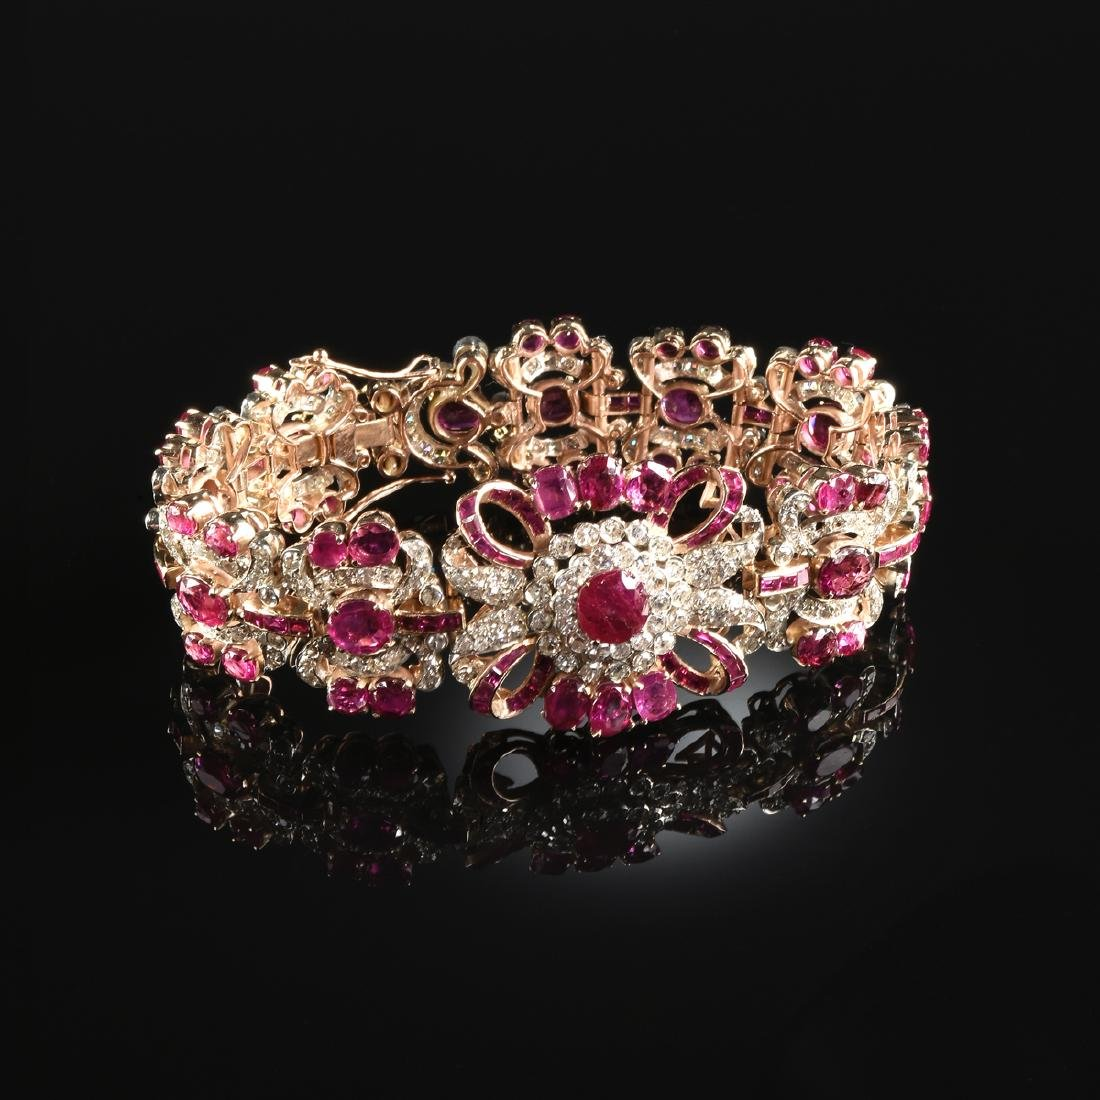 A 14K YELLOW GOLD, RUBY, AND DIAMOND LADY'S BRACELET,